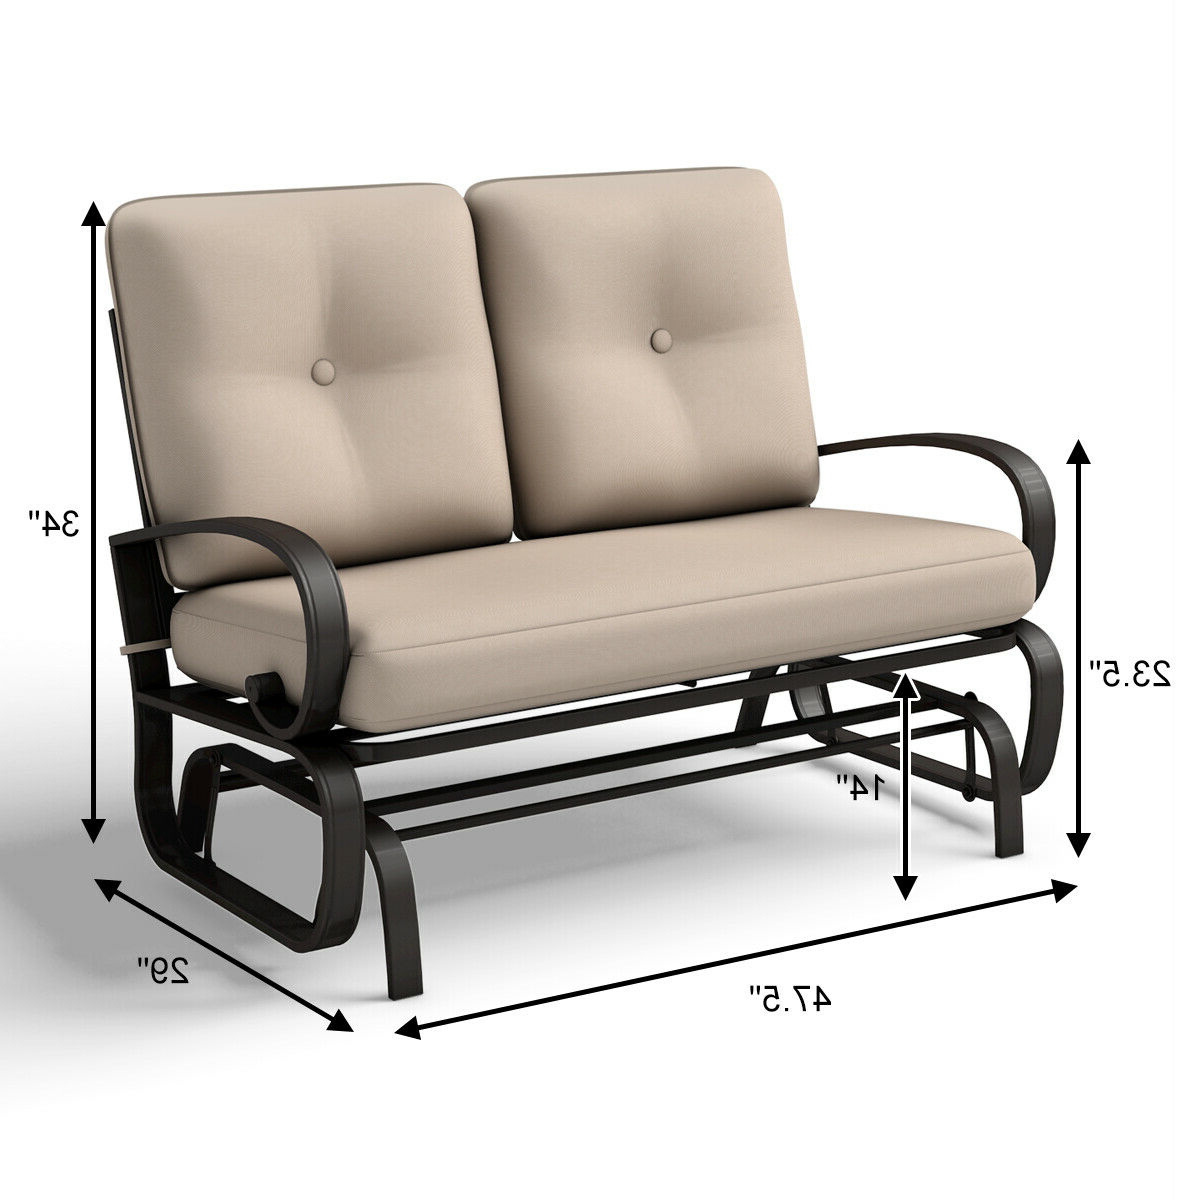 Loveseat Glider Benches With Cushions For Most Popular Costway Glider Outdoor Patio Rocking Bench Loveseat (View 10 of 30)